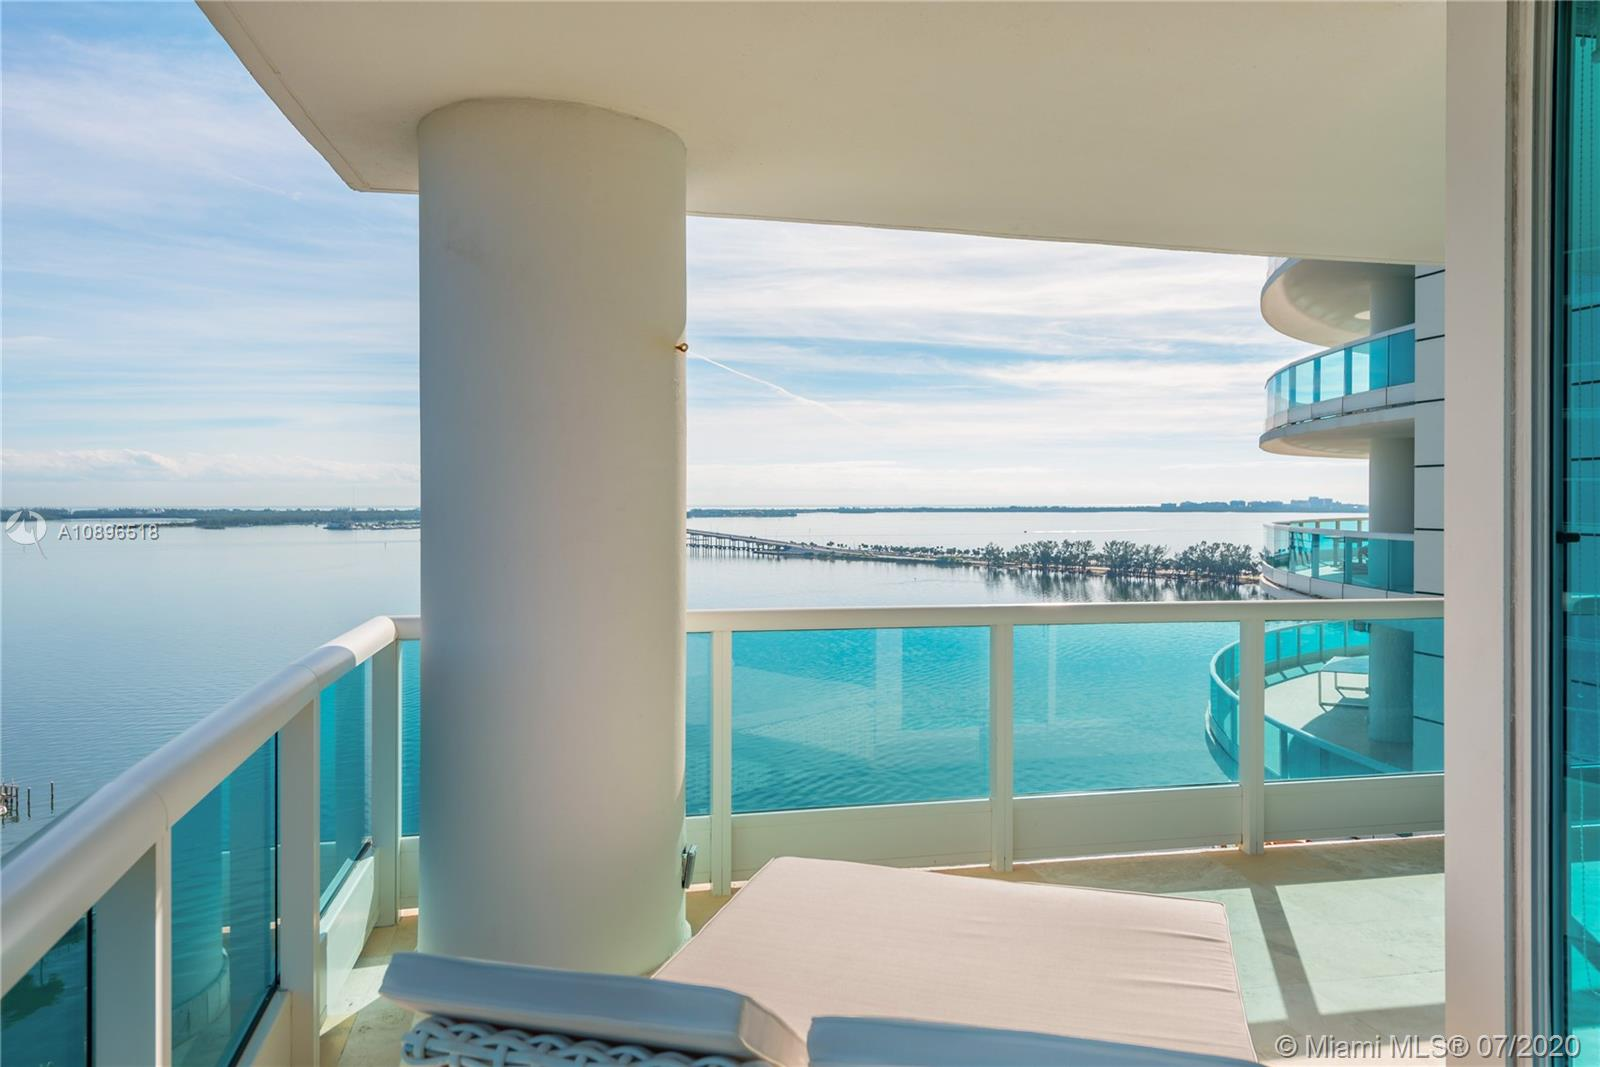 Located on Brickell Ave, this property at BRISTOL TOWER is a unique find. Private entrance, lead to striking water views. COMPLETELY updated unit 2 Bd, 2.5 Bth, laundry area, 2,070 sq ft. Light & bright gourmet kitchen. Wraparound balcony, open air entertaining space with panoramic views of Key Biscayne Bay to provide entertaining while viewing spectacular sunsets. Located near to I95 access, minutes from downtown financial, and direct access to walking and biking to Key Biscayne Causeway. Features include Crestron, Wolf, Subzero, Electrolux washer/dryer and much more! Furniture negotiable.